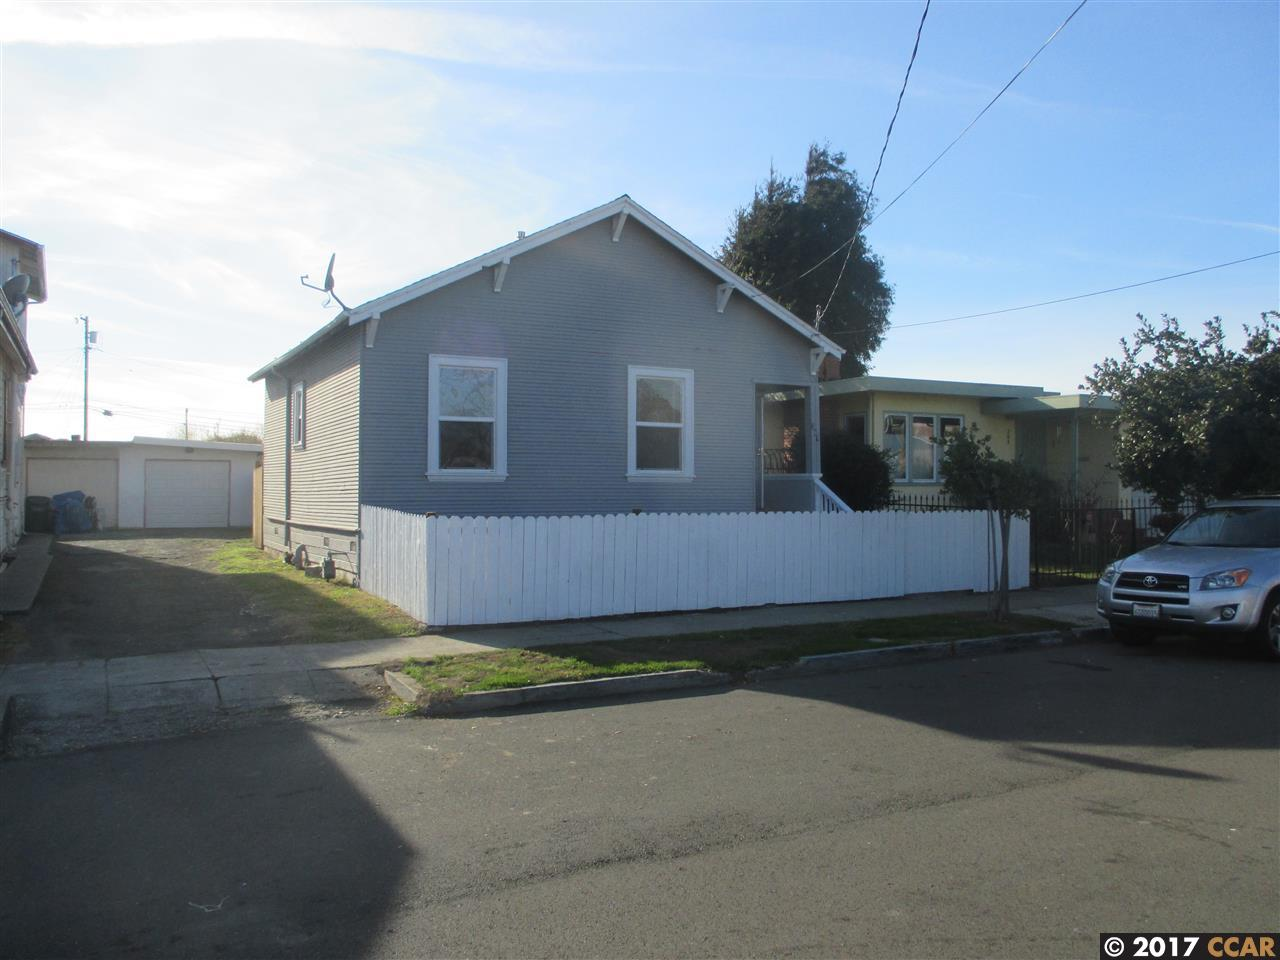 387 BECK ST, RICHMOND, CA 94804